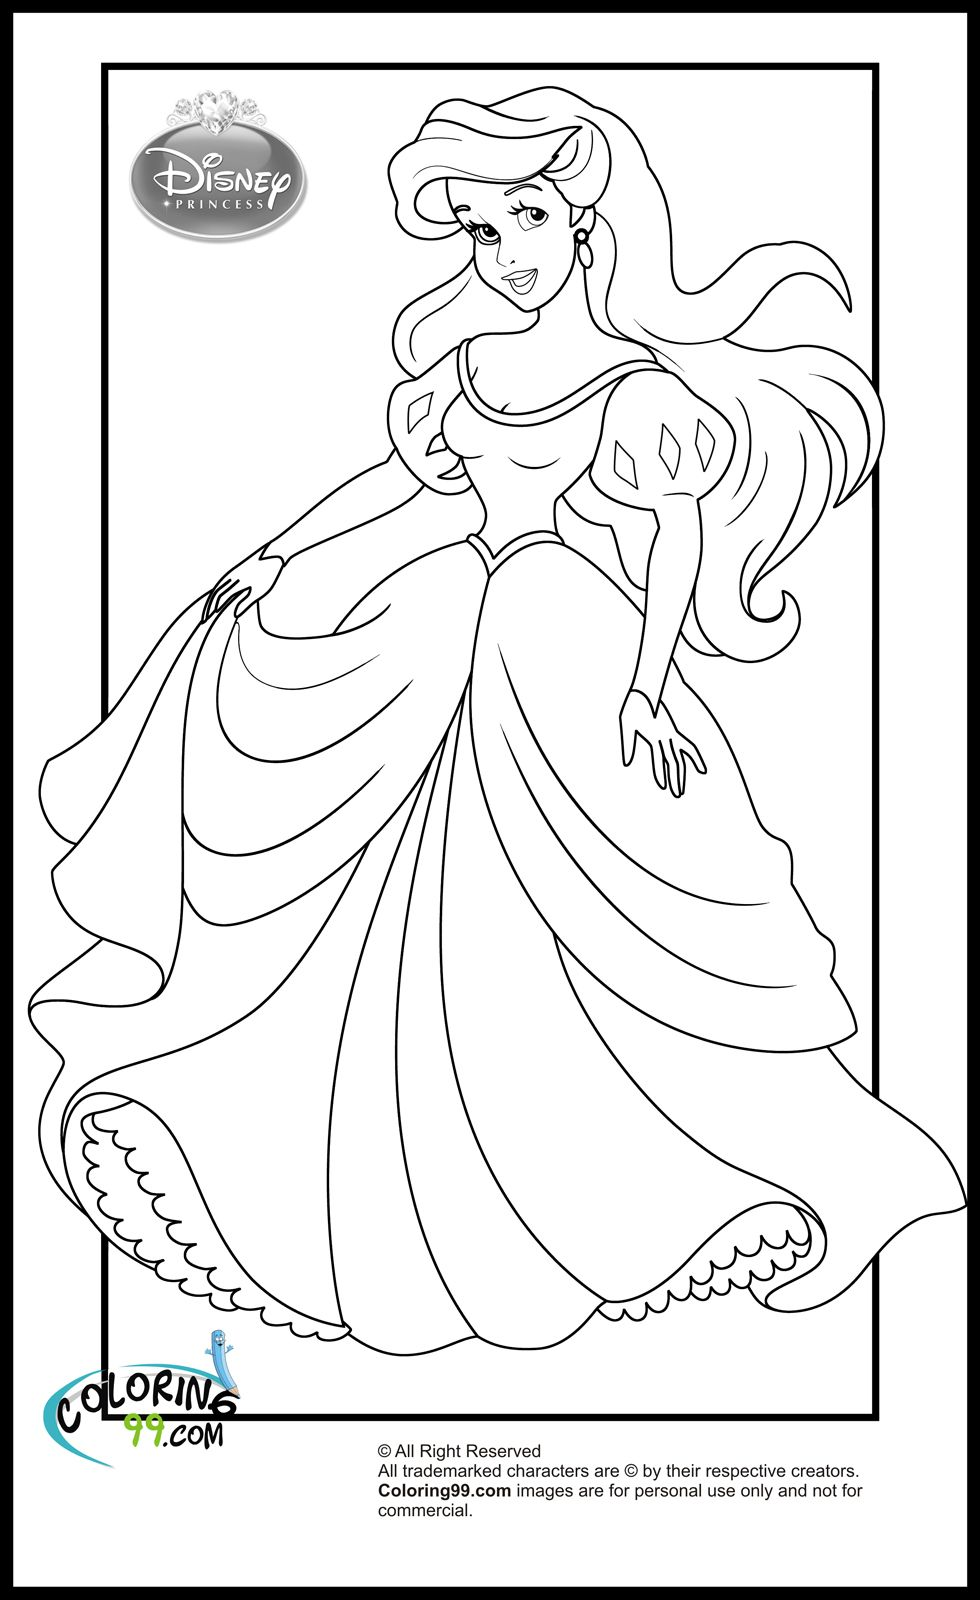 Disney Princess Is Always Timeless It Might Be The Reason Why I Create Some Disney Disney Princess Coloring Pages Ariel Coloring Pages Disney Princess Colors